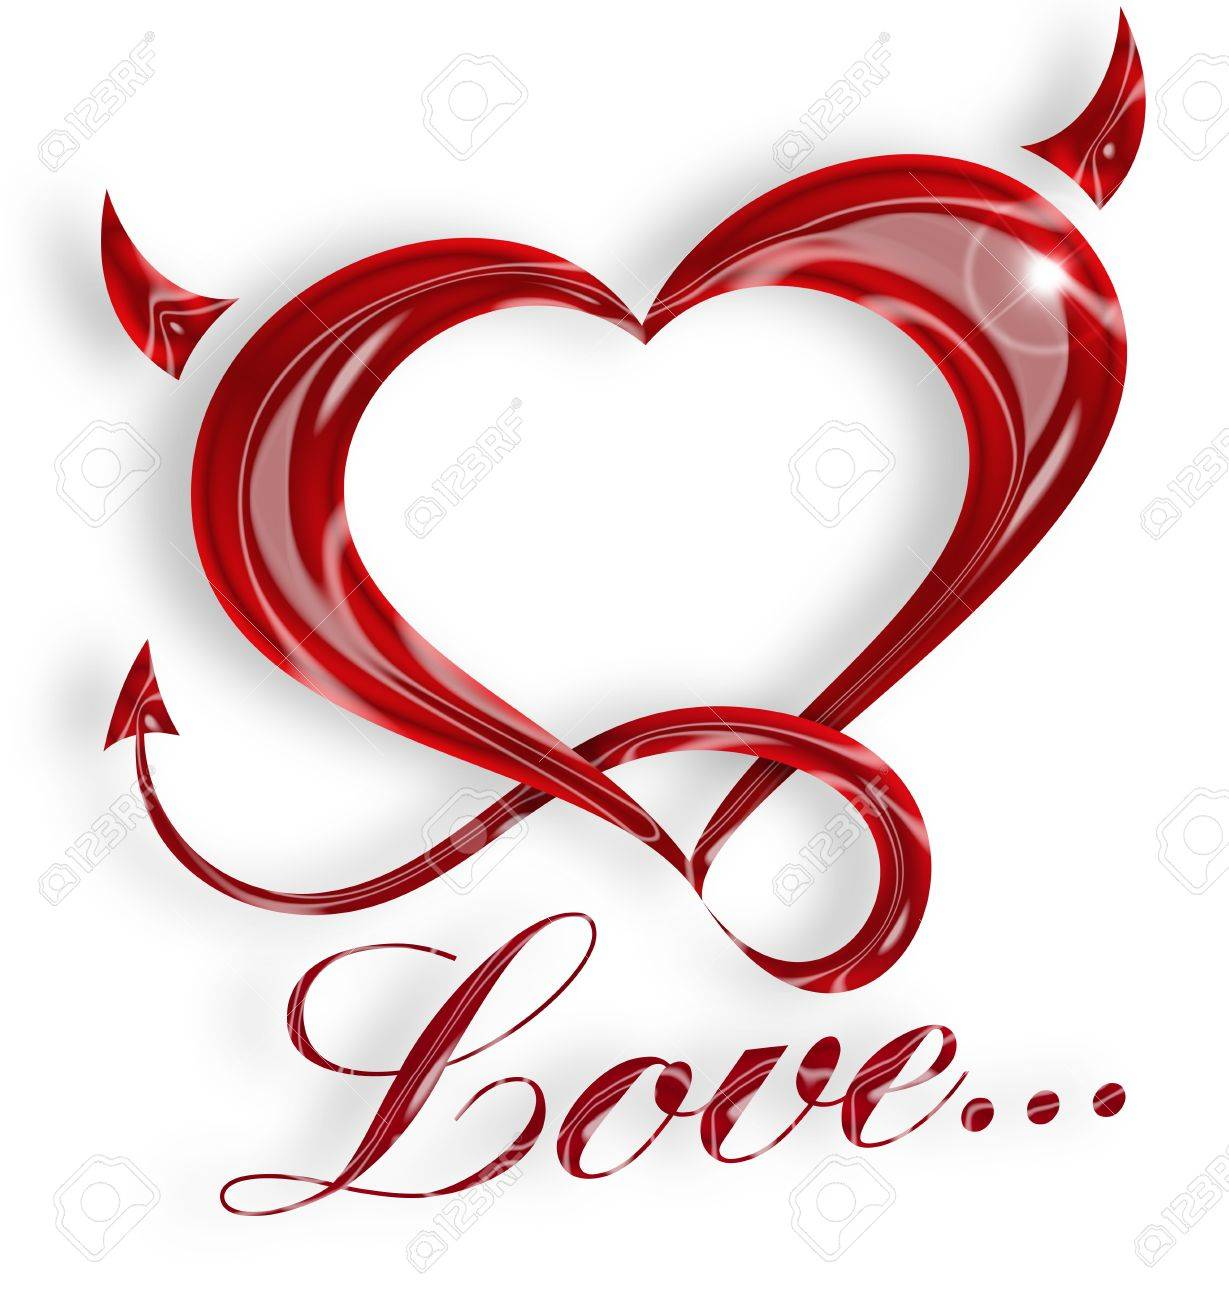 illustration of a red heart with horns and tail Stock Illustration - 16135111